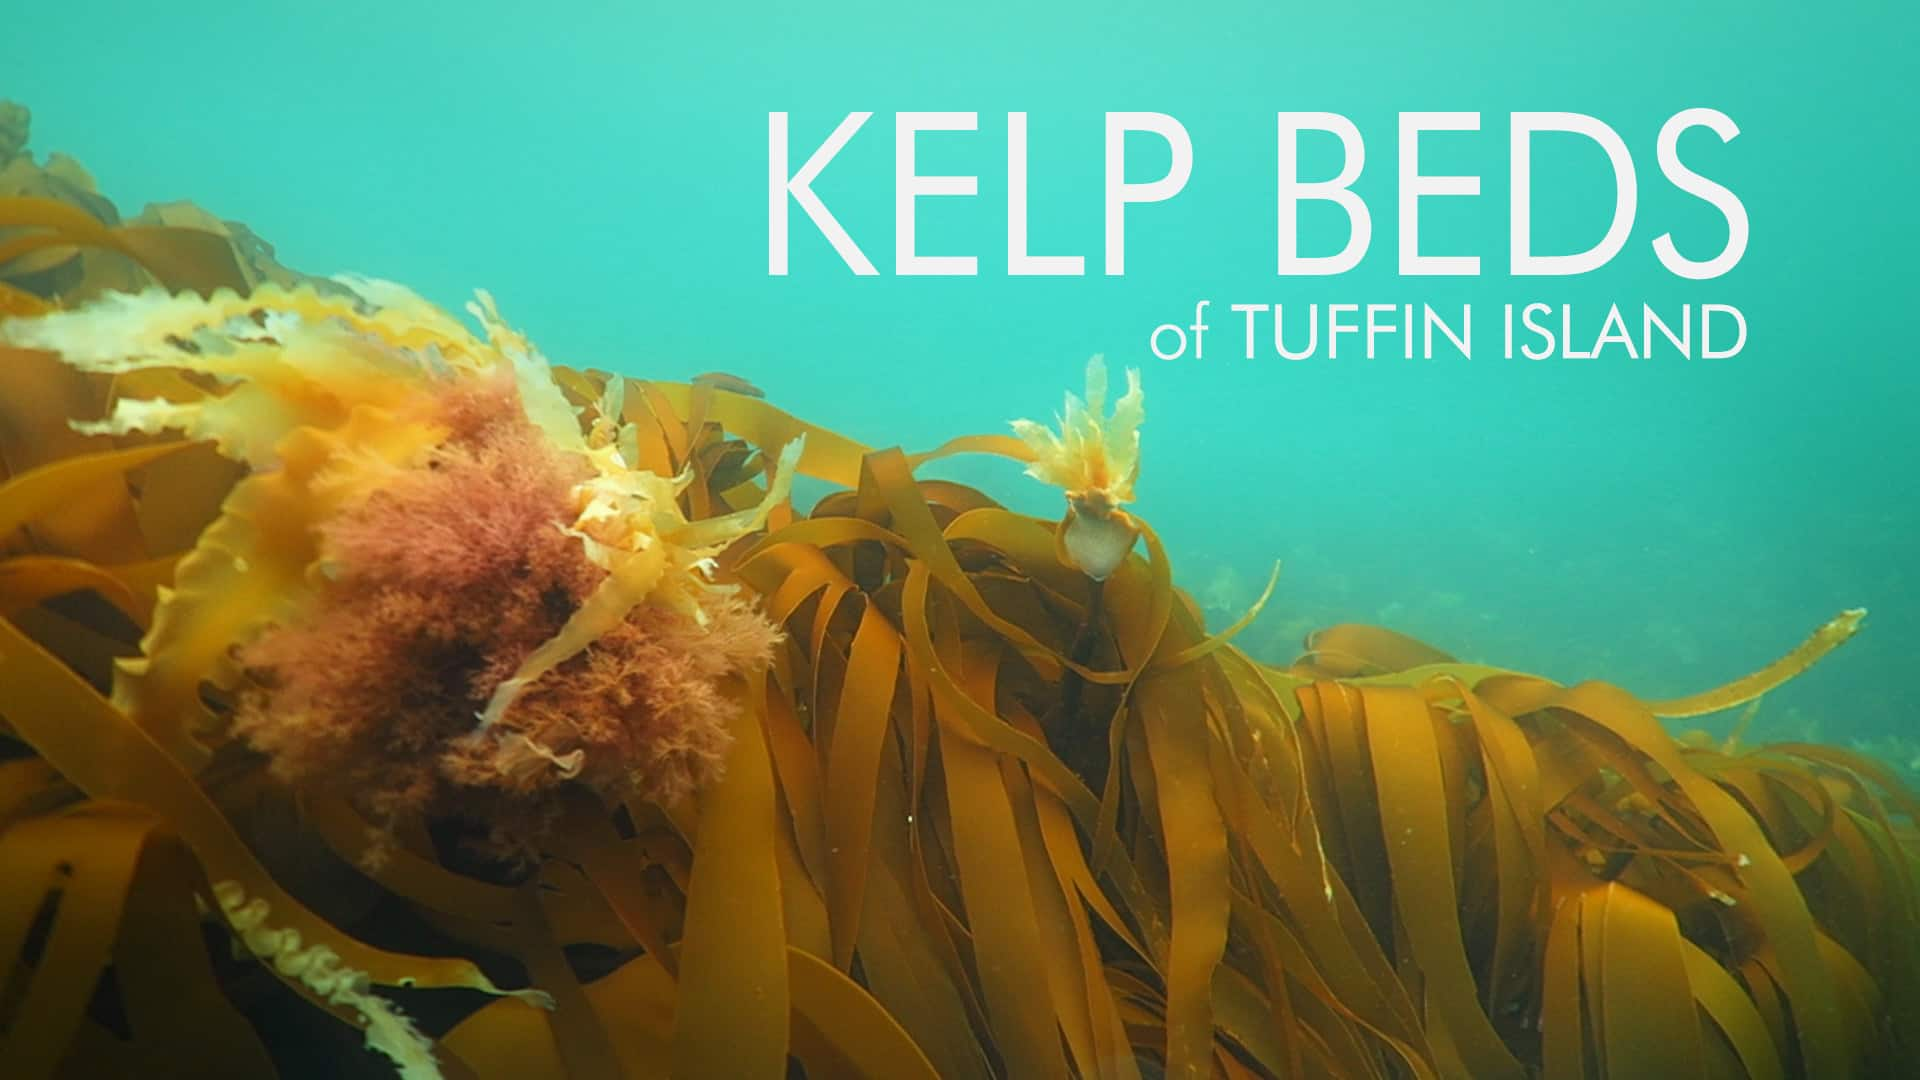 Kelp beds of Tuffin Island